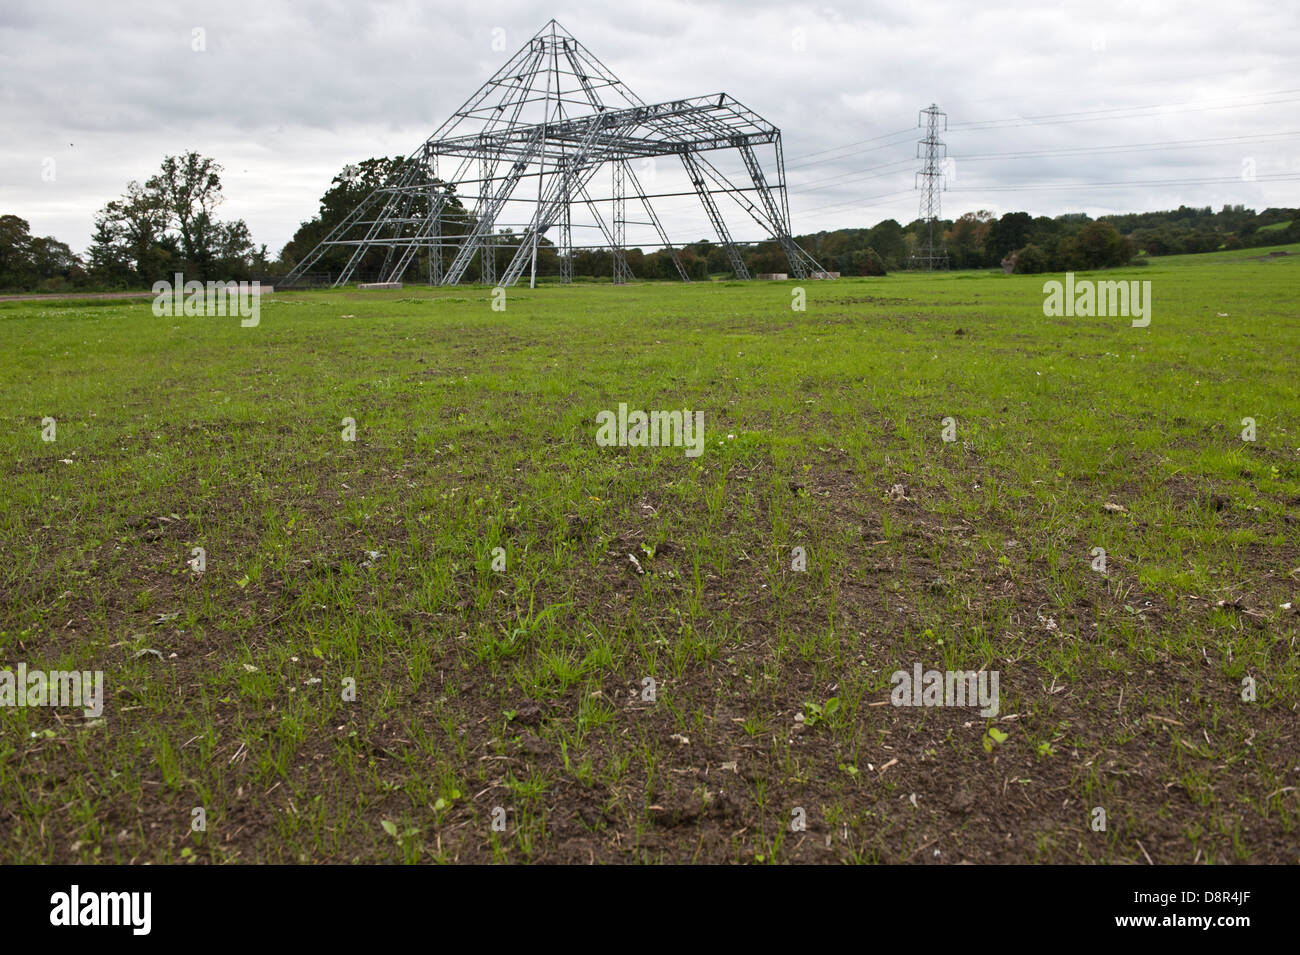 the scaffold structure of the main Pyramid Stage and newly planted grass seedlings views of Worthy Farm , Pilton, - Stock Image